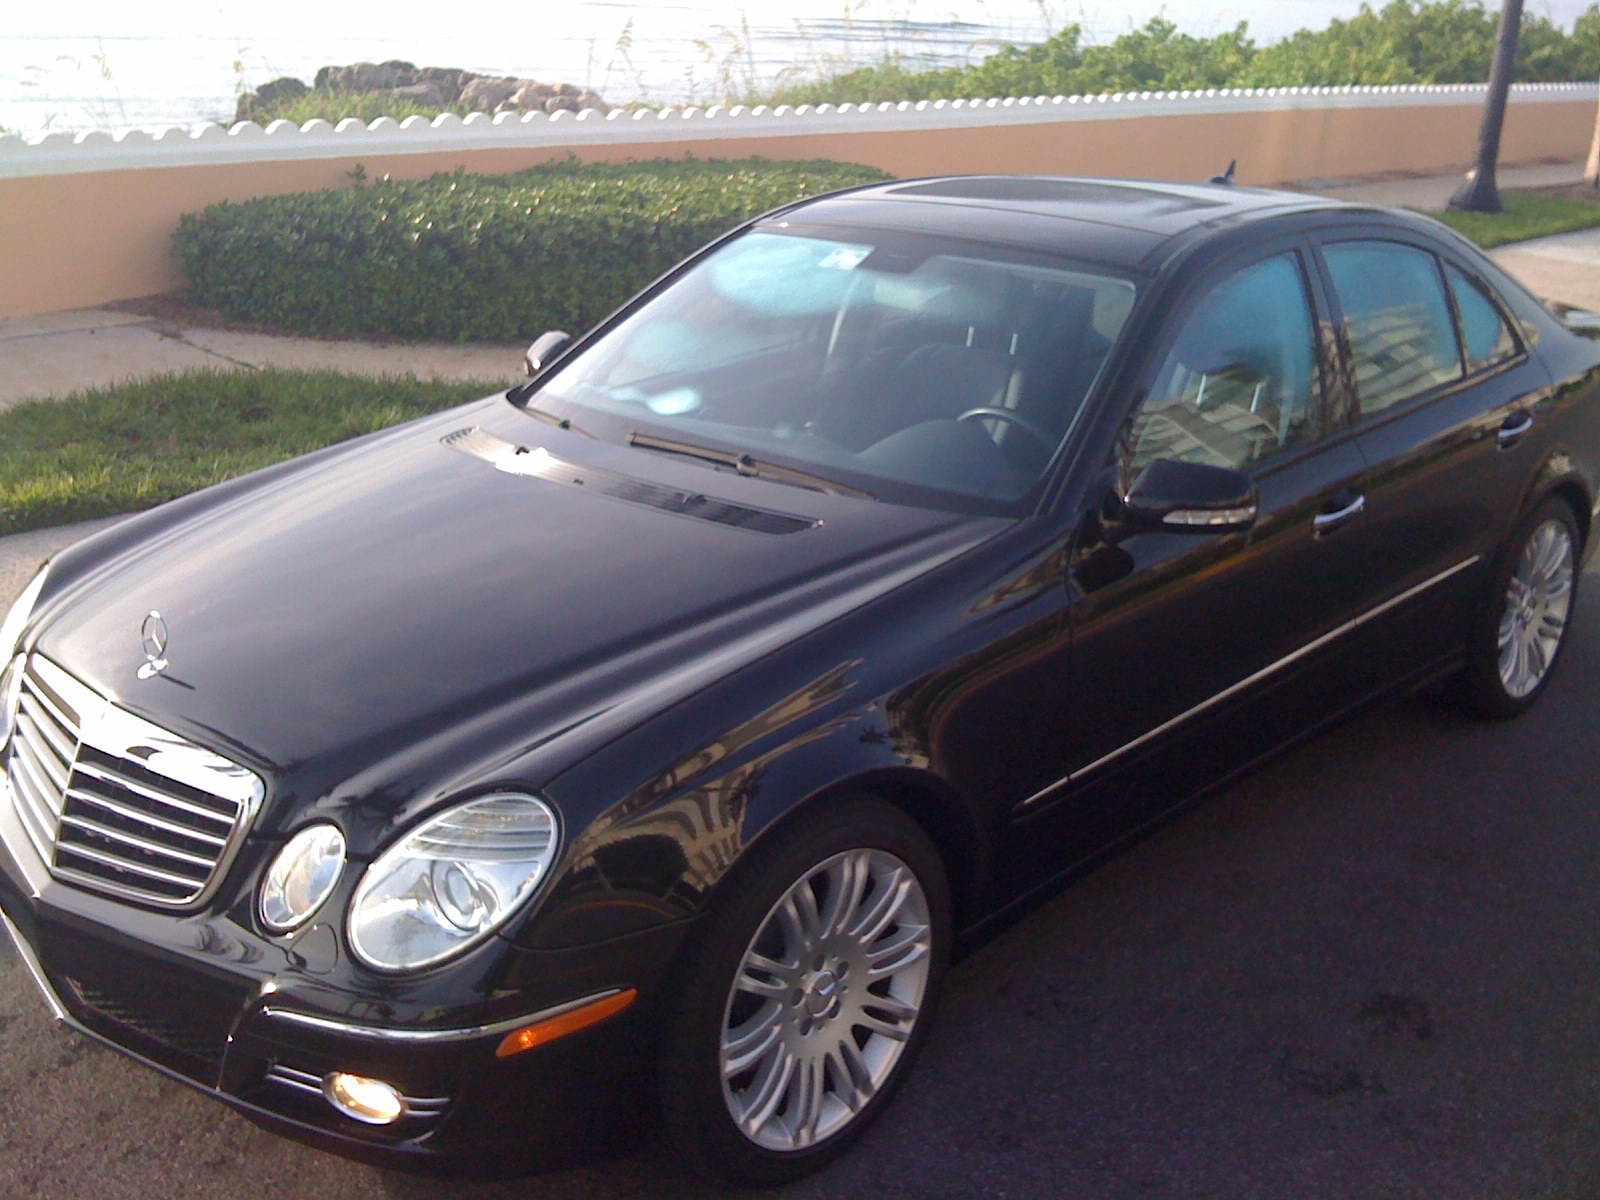 2009 mercedes benz e class exterior pictures cargurus. Black Bedroom Furniture Sets. Home Design Ideas